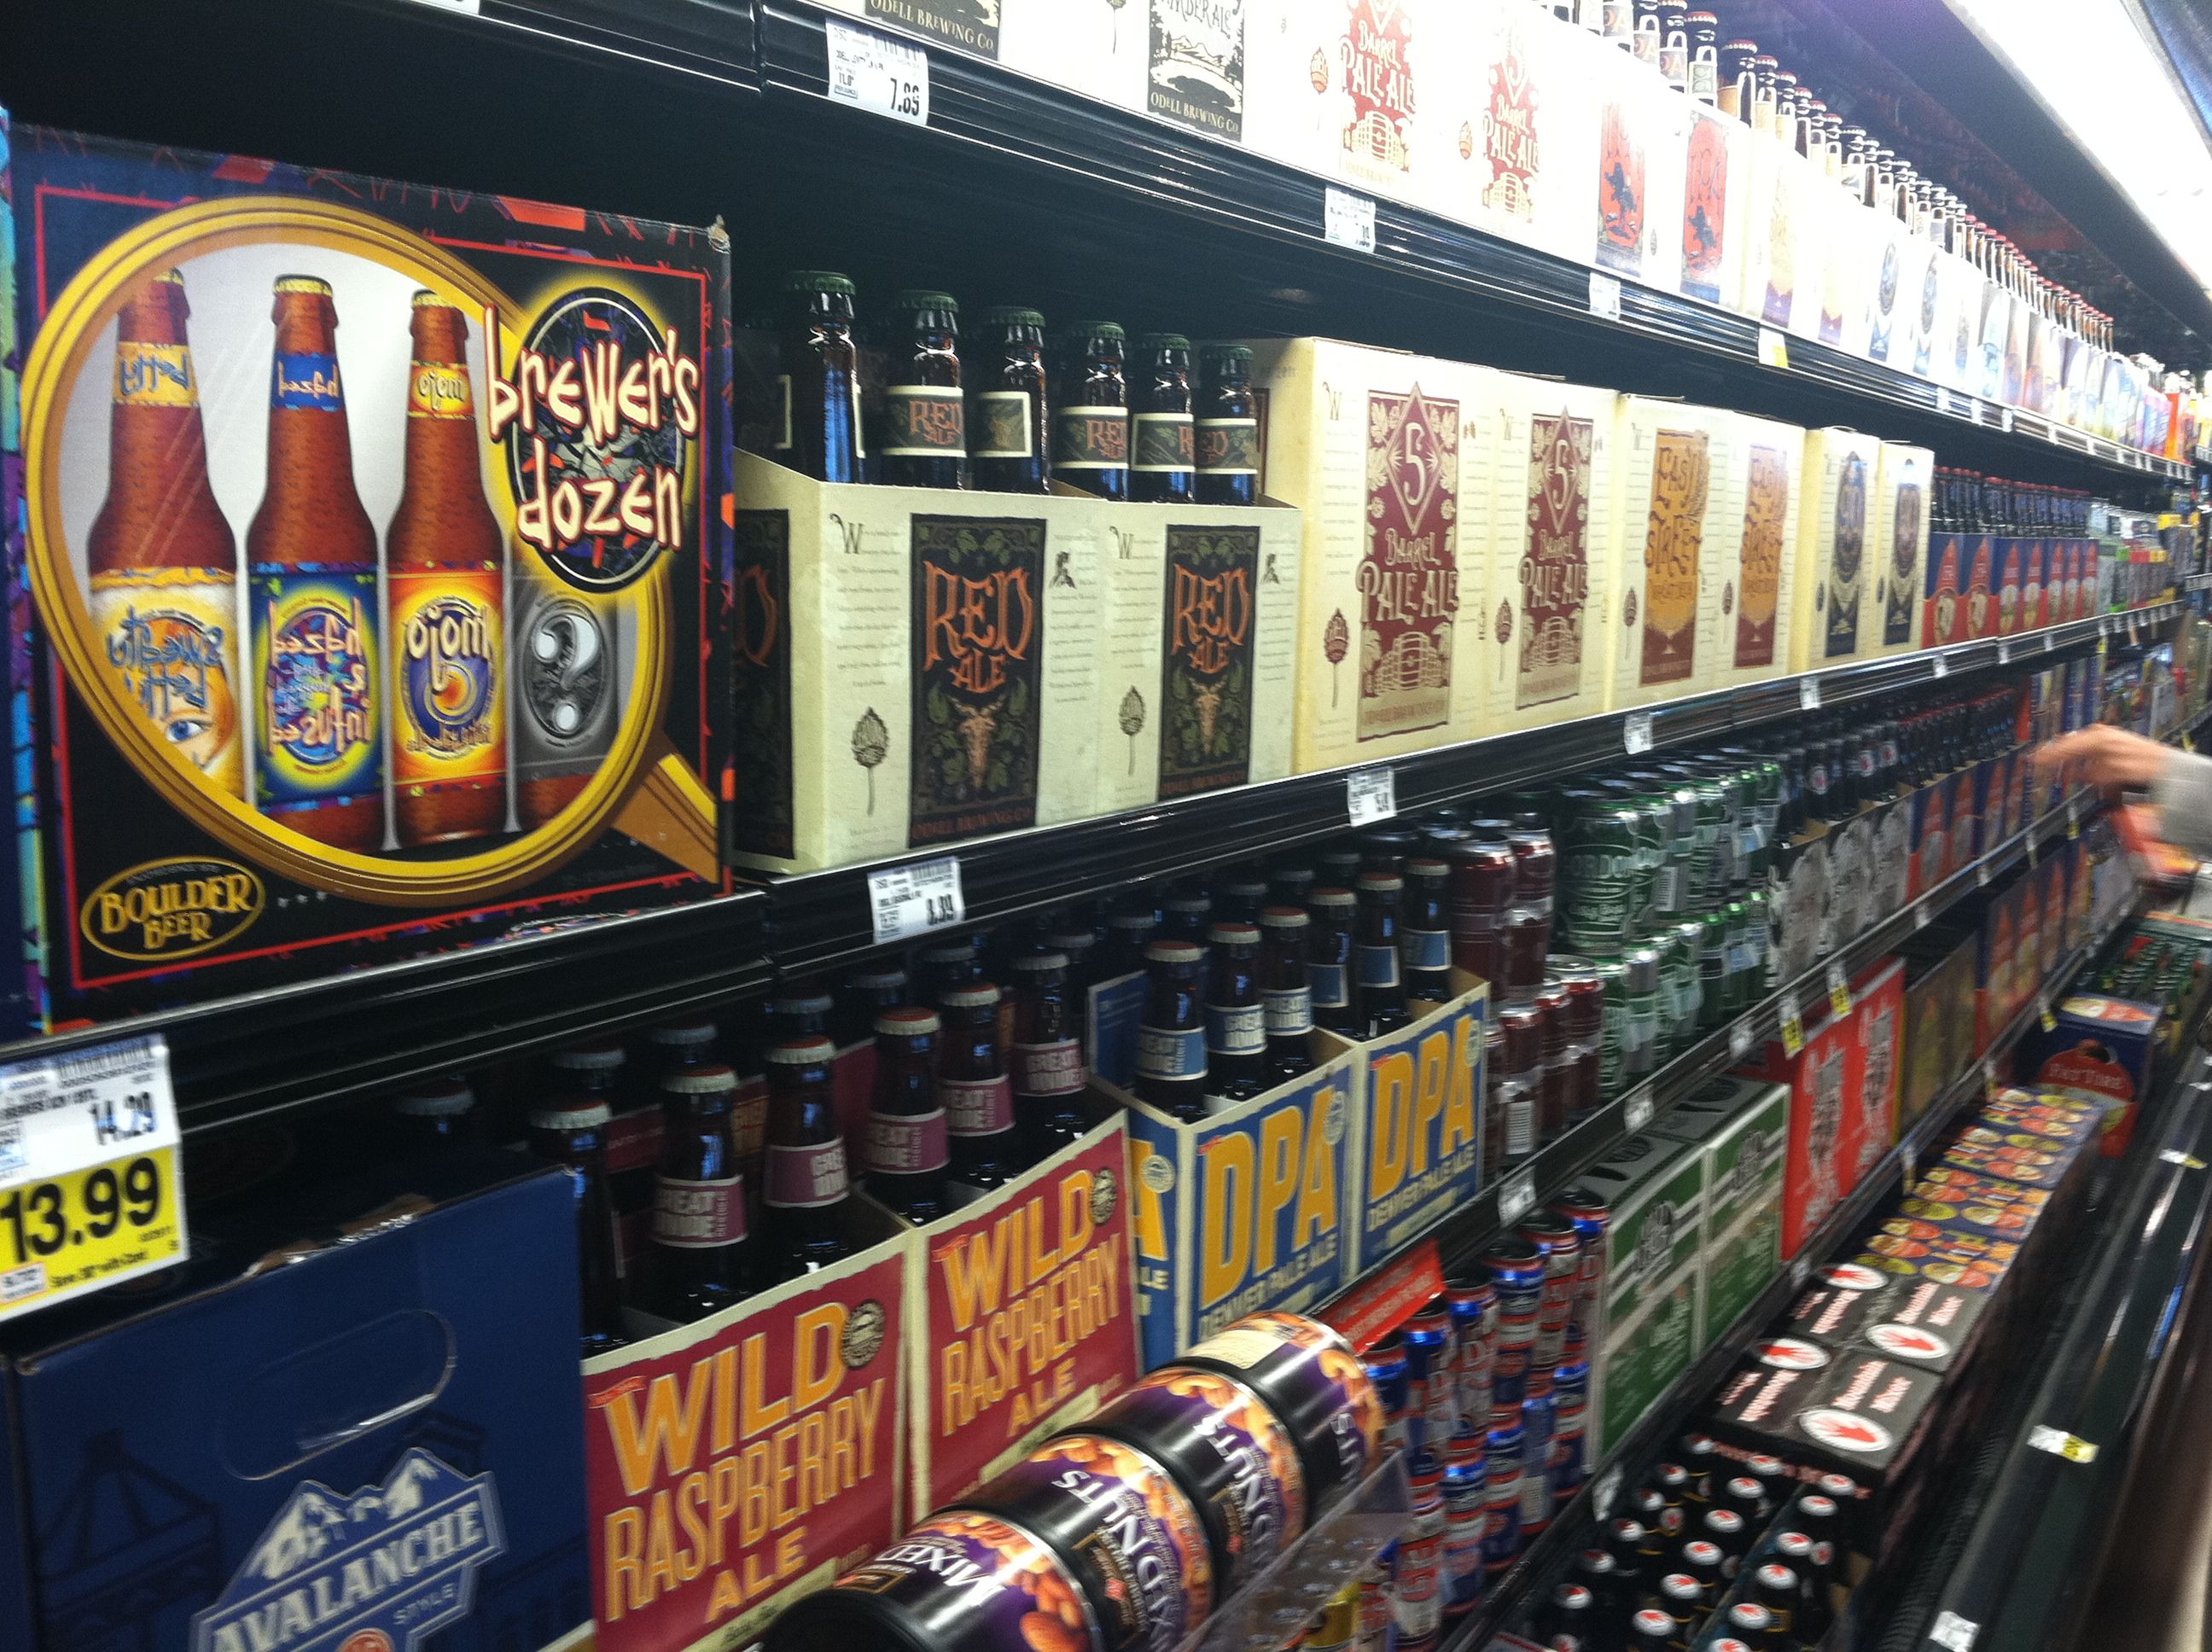 Safeway, Walmart Lead Charge For Liquor Sales In Grocery Stores